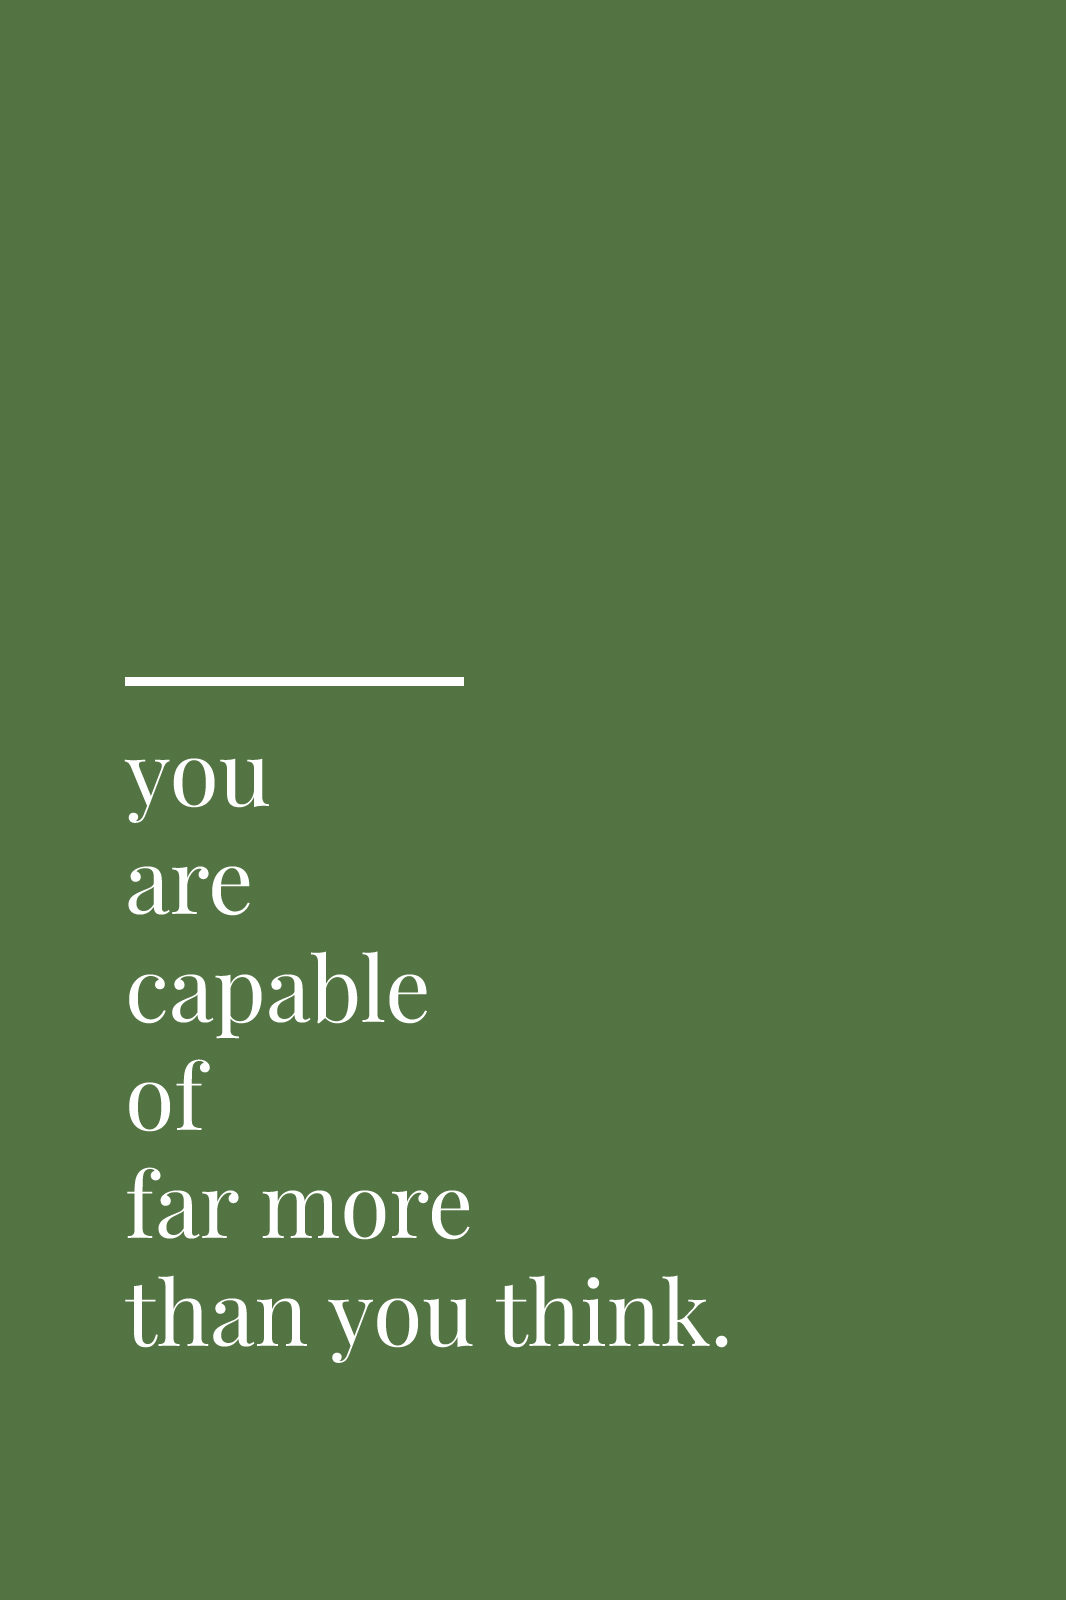 capable-quote